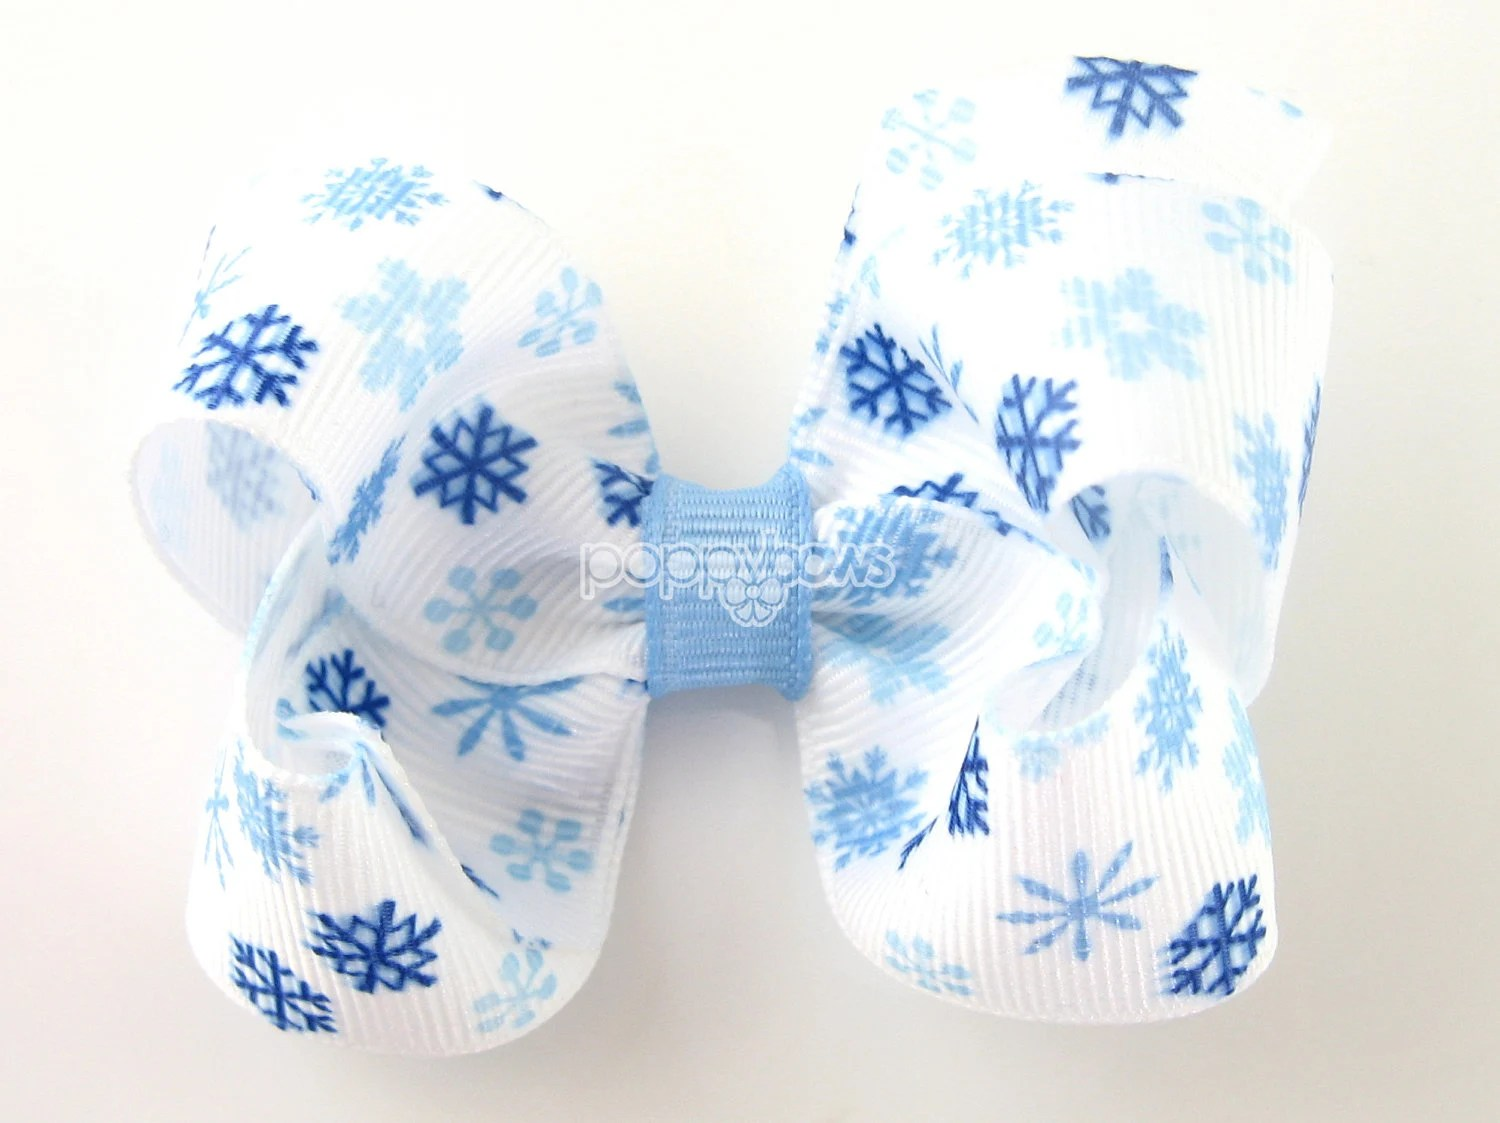 Snowflake Hair Bow - 3 Inch Winter Hairbow White Light Blue Royal Blue - Baby Toddler Girl - 3 Inch Boutique Hair Bow - PoppyBows